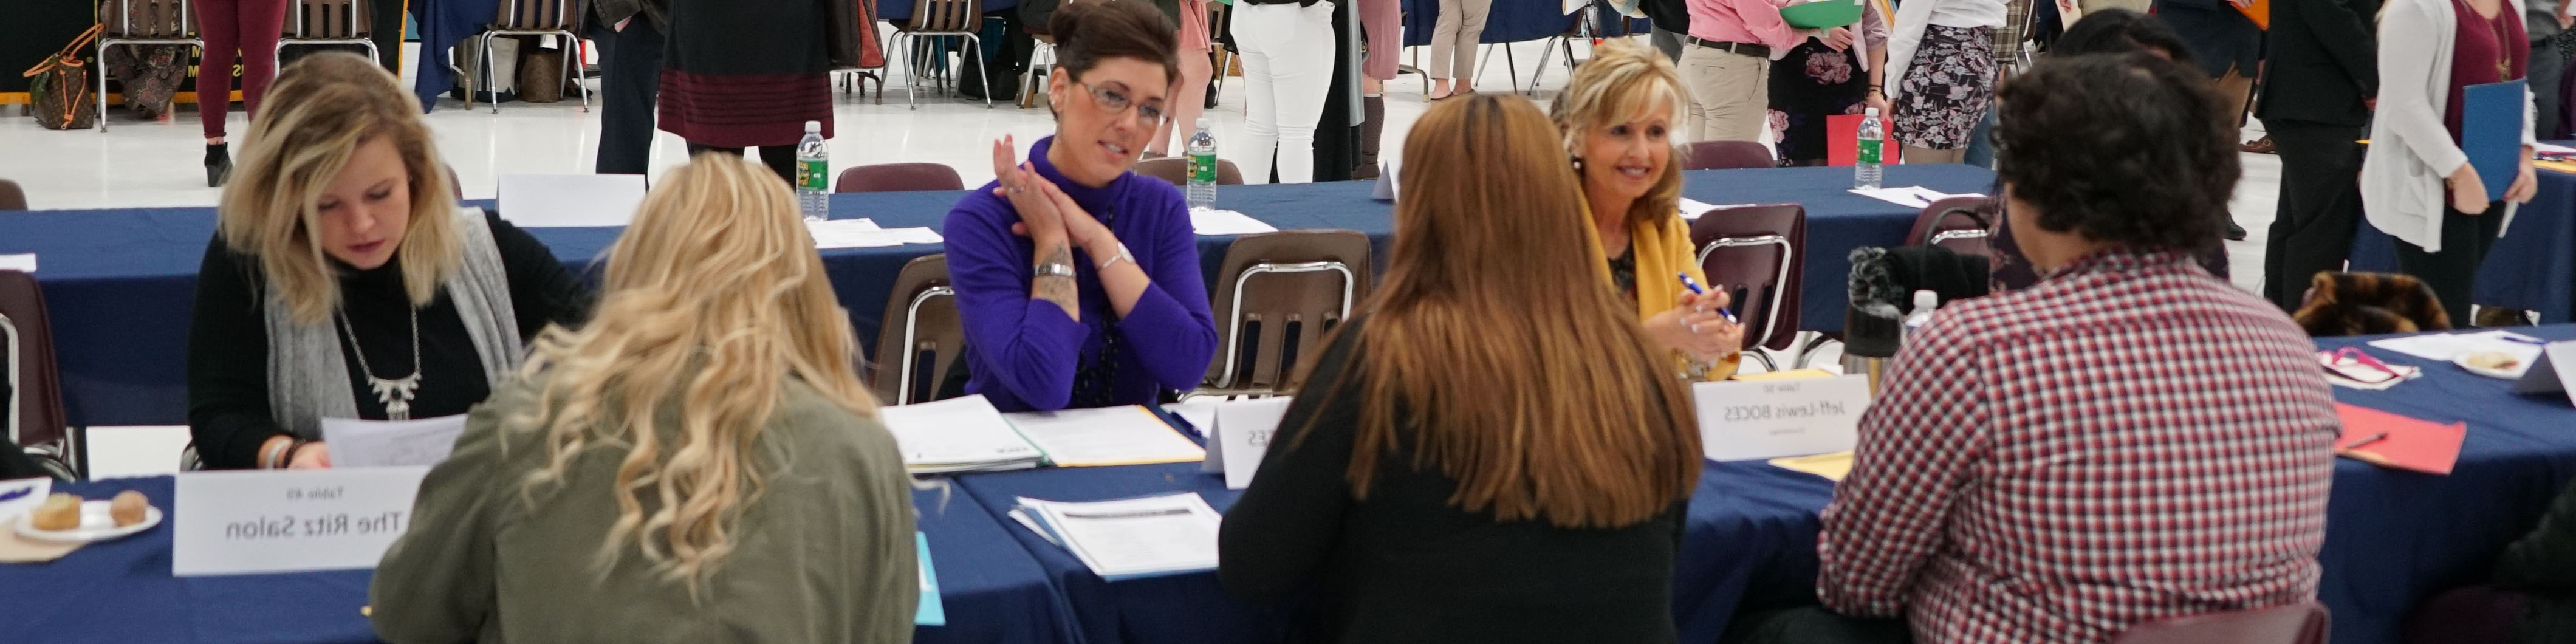 workforce2020 student mock interviews